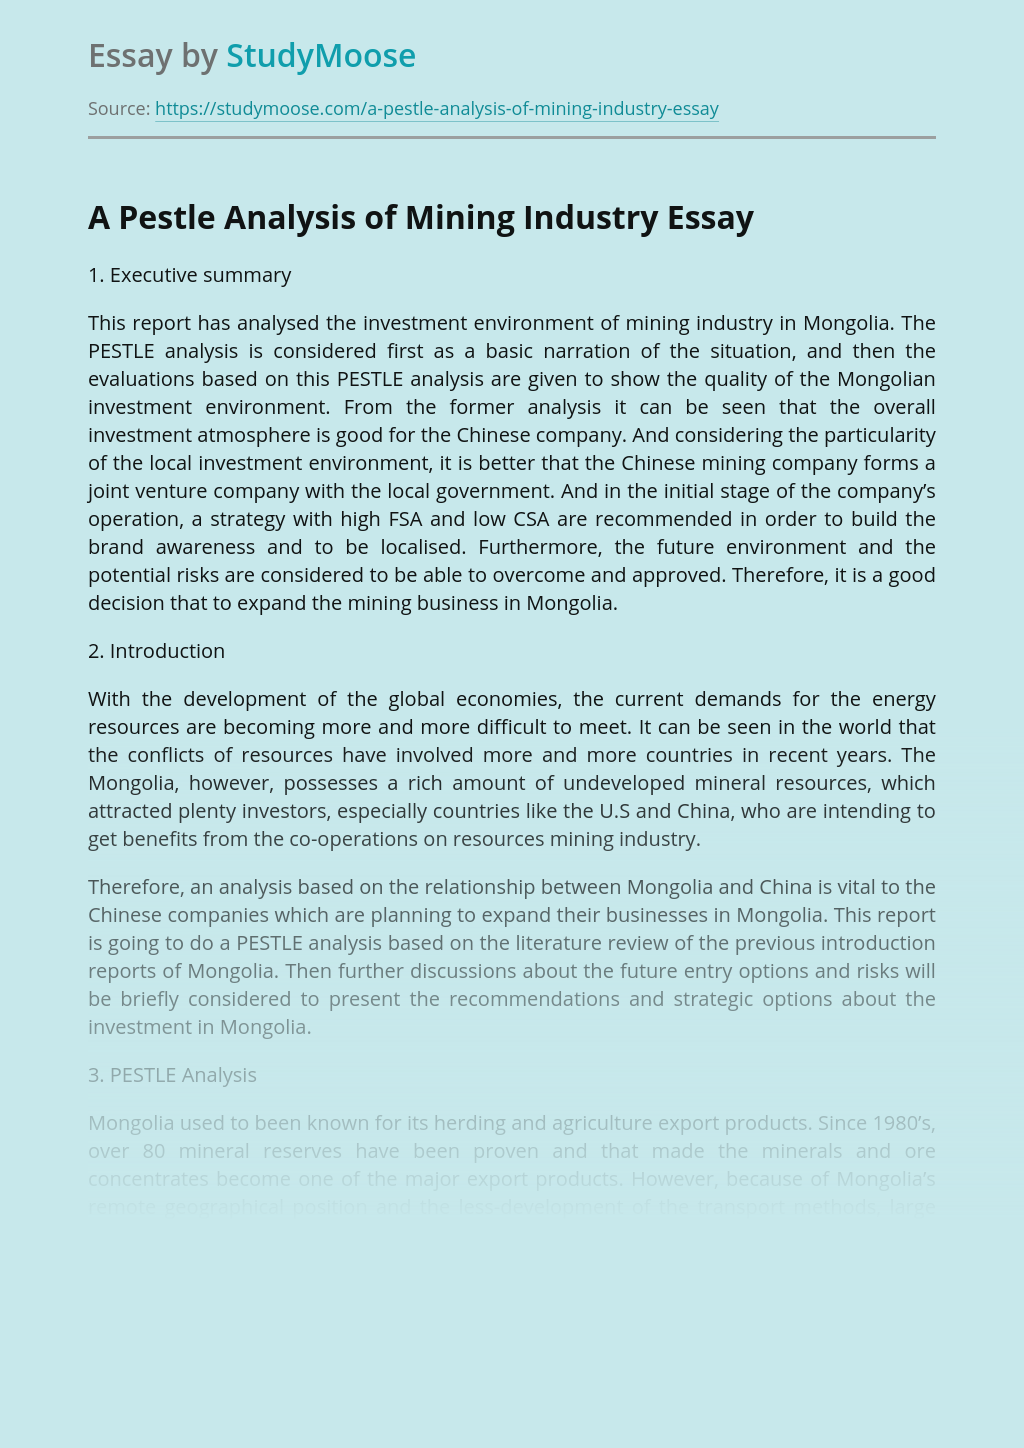 A Pestle Analysis of Mining Industry